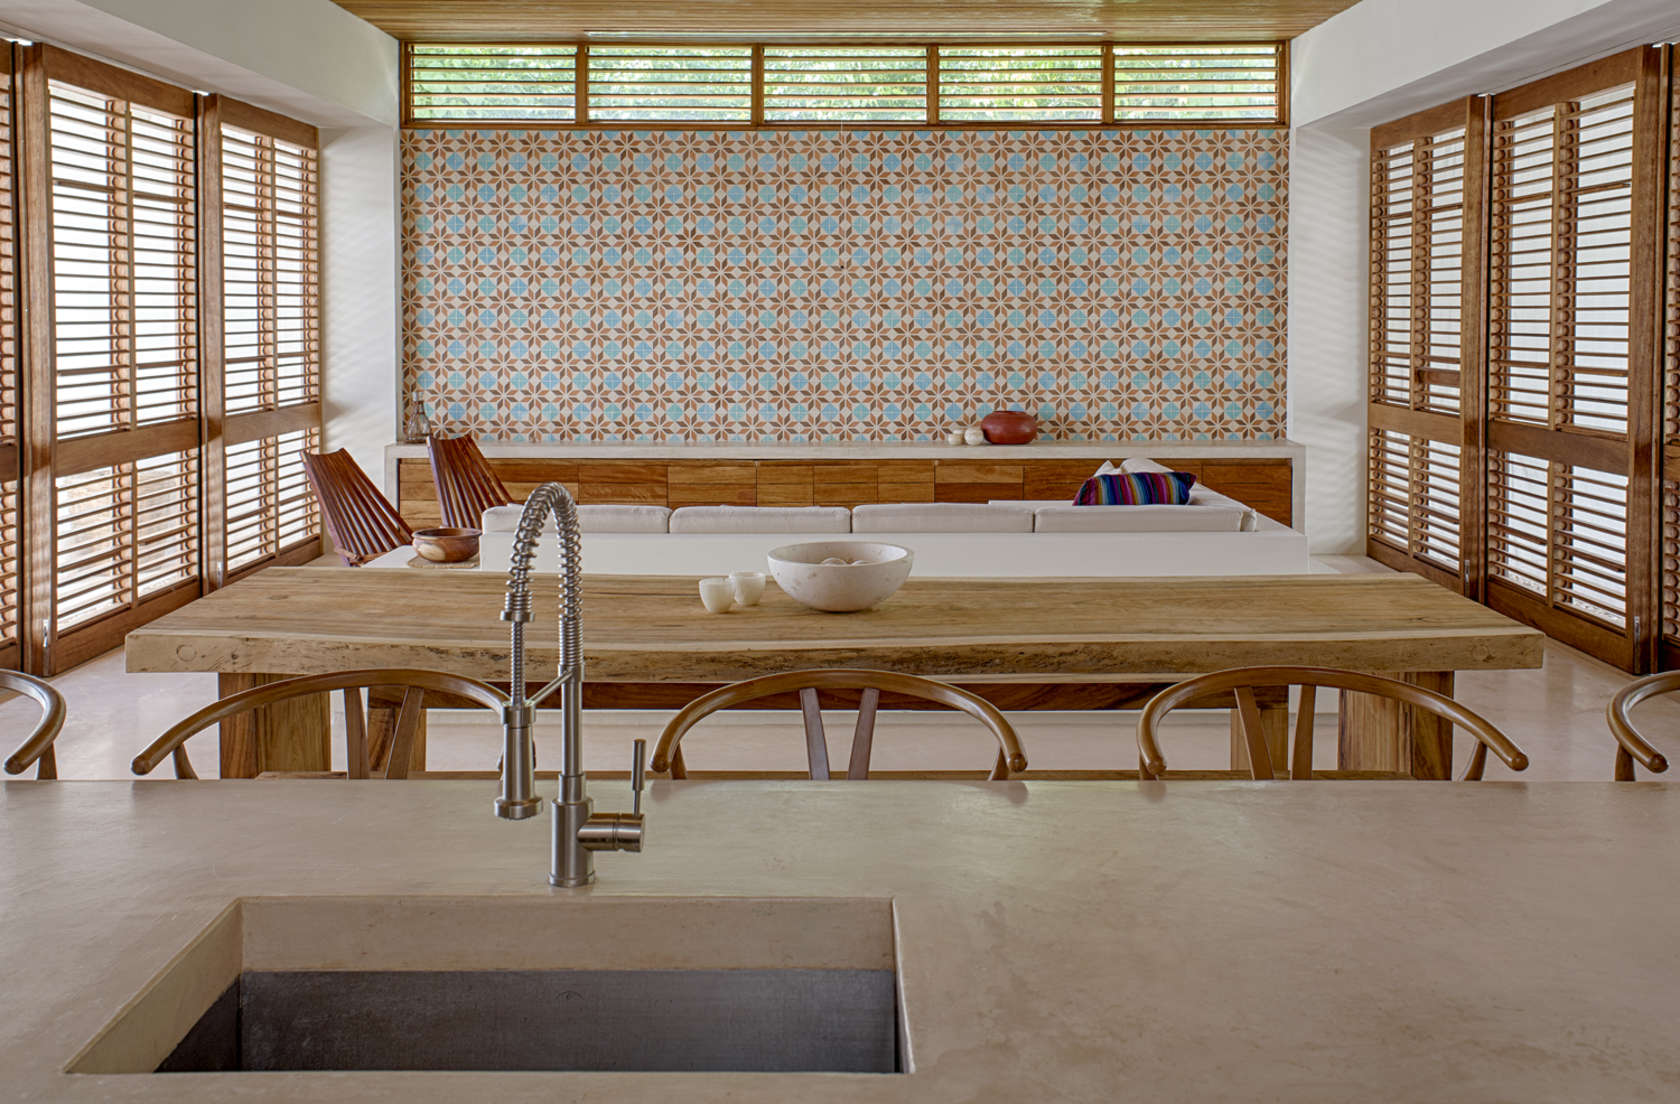 Moroccan Tile - Eco friendly house in mexico does not sacrifice style